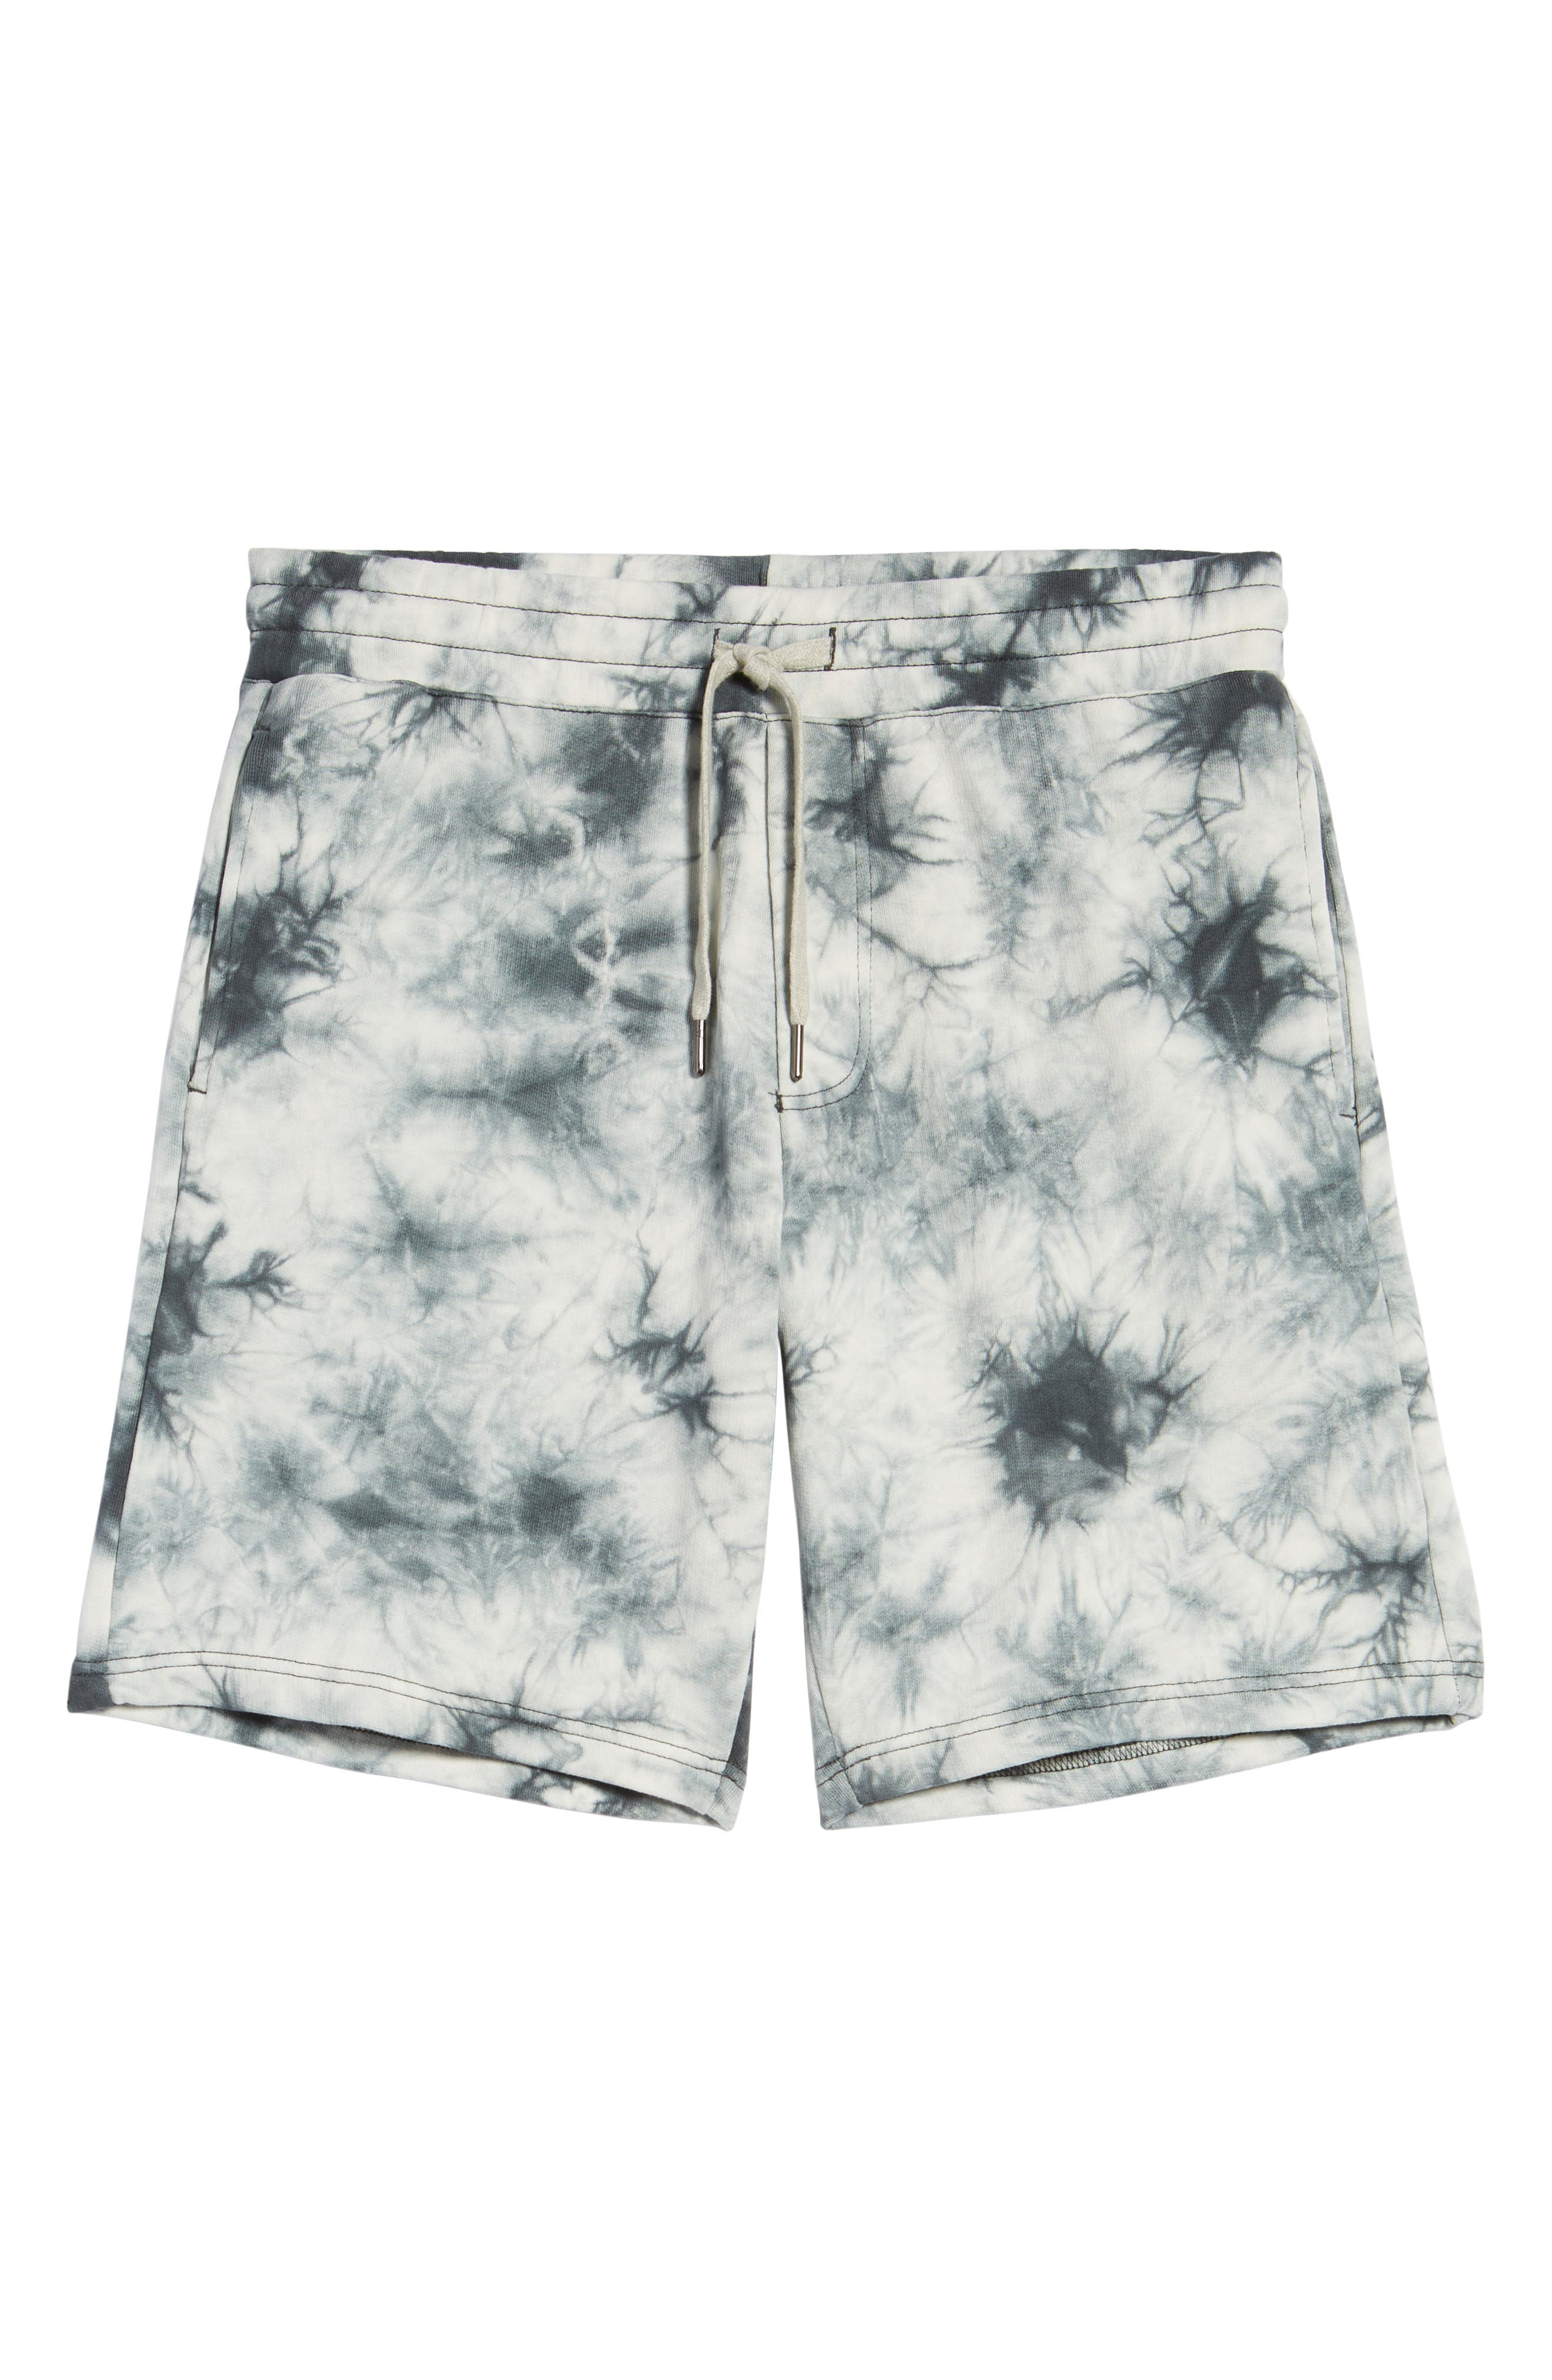 Twisted 9-Inch Cotton Shorts,                             Alternate thumbnail 6, color,                             Blue Tie Dye